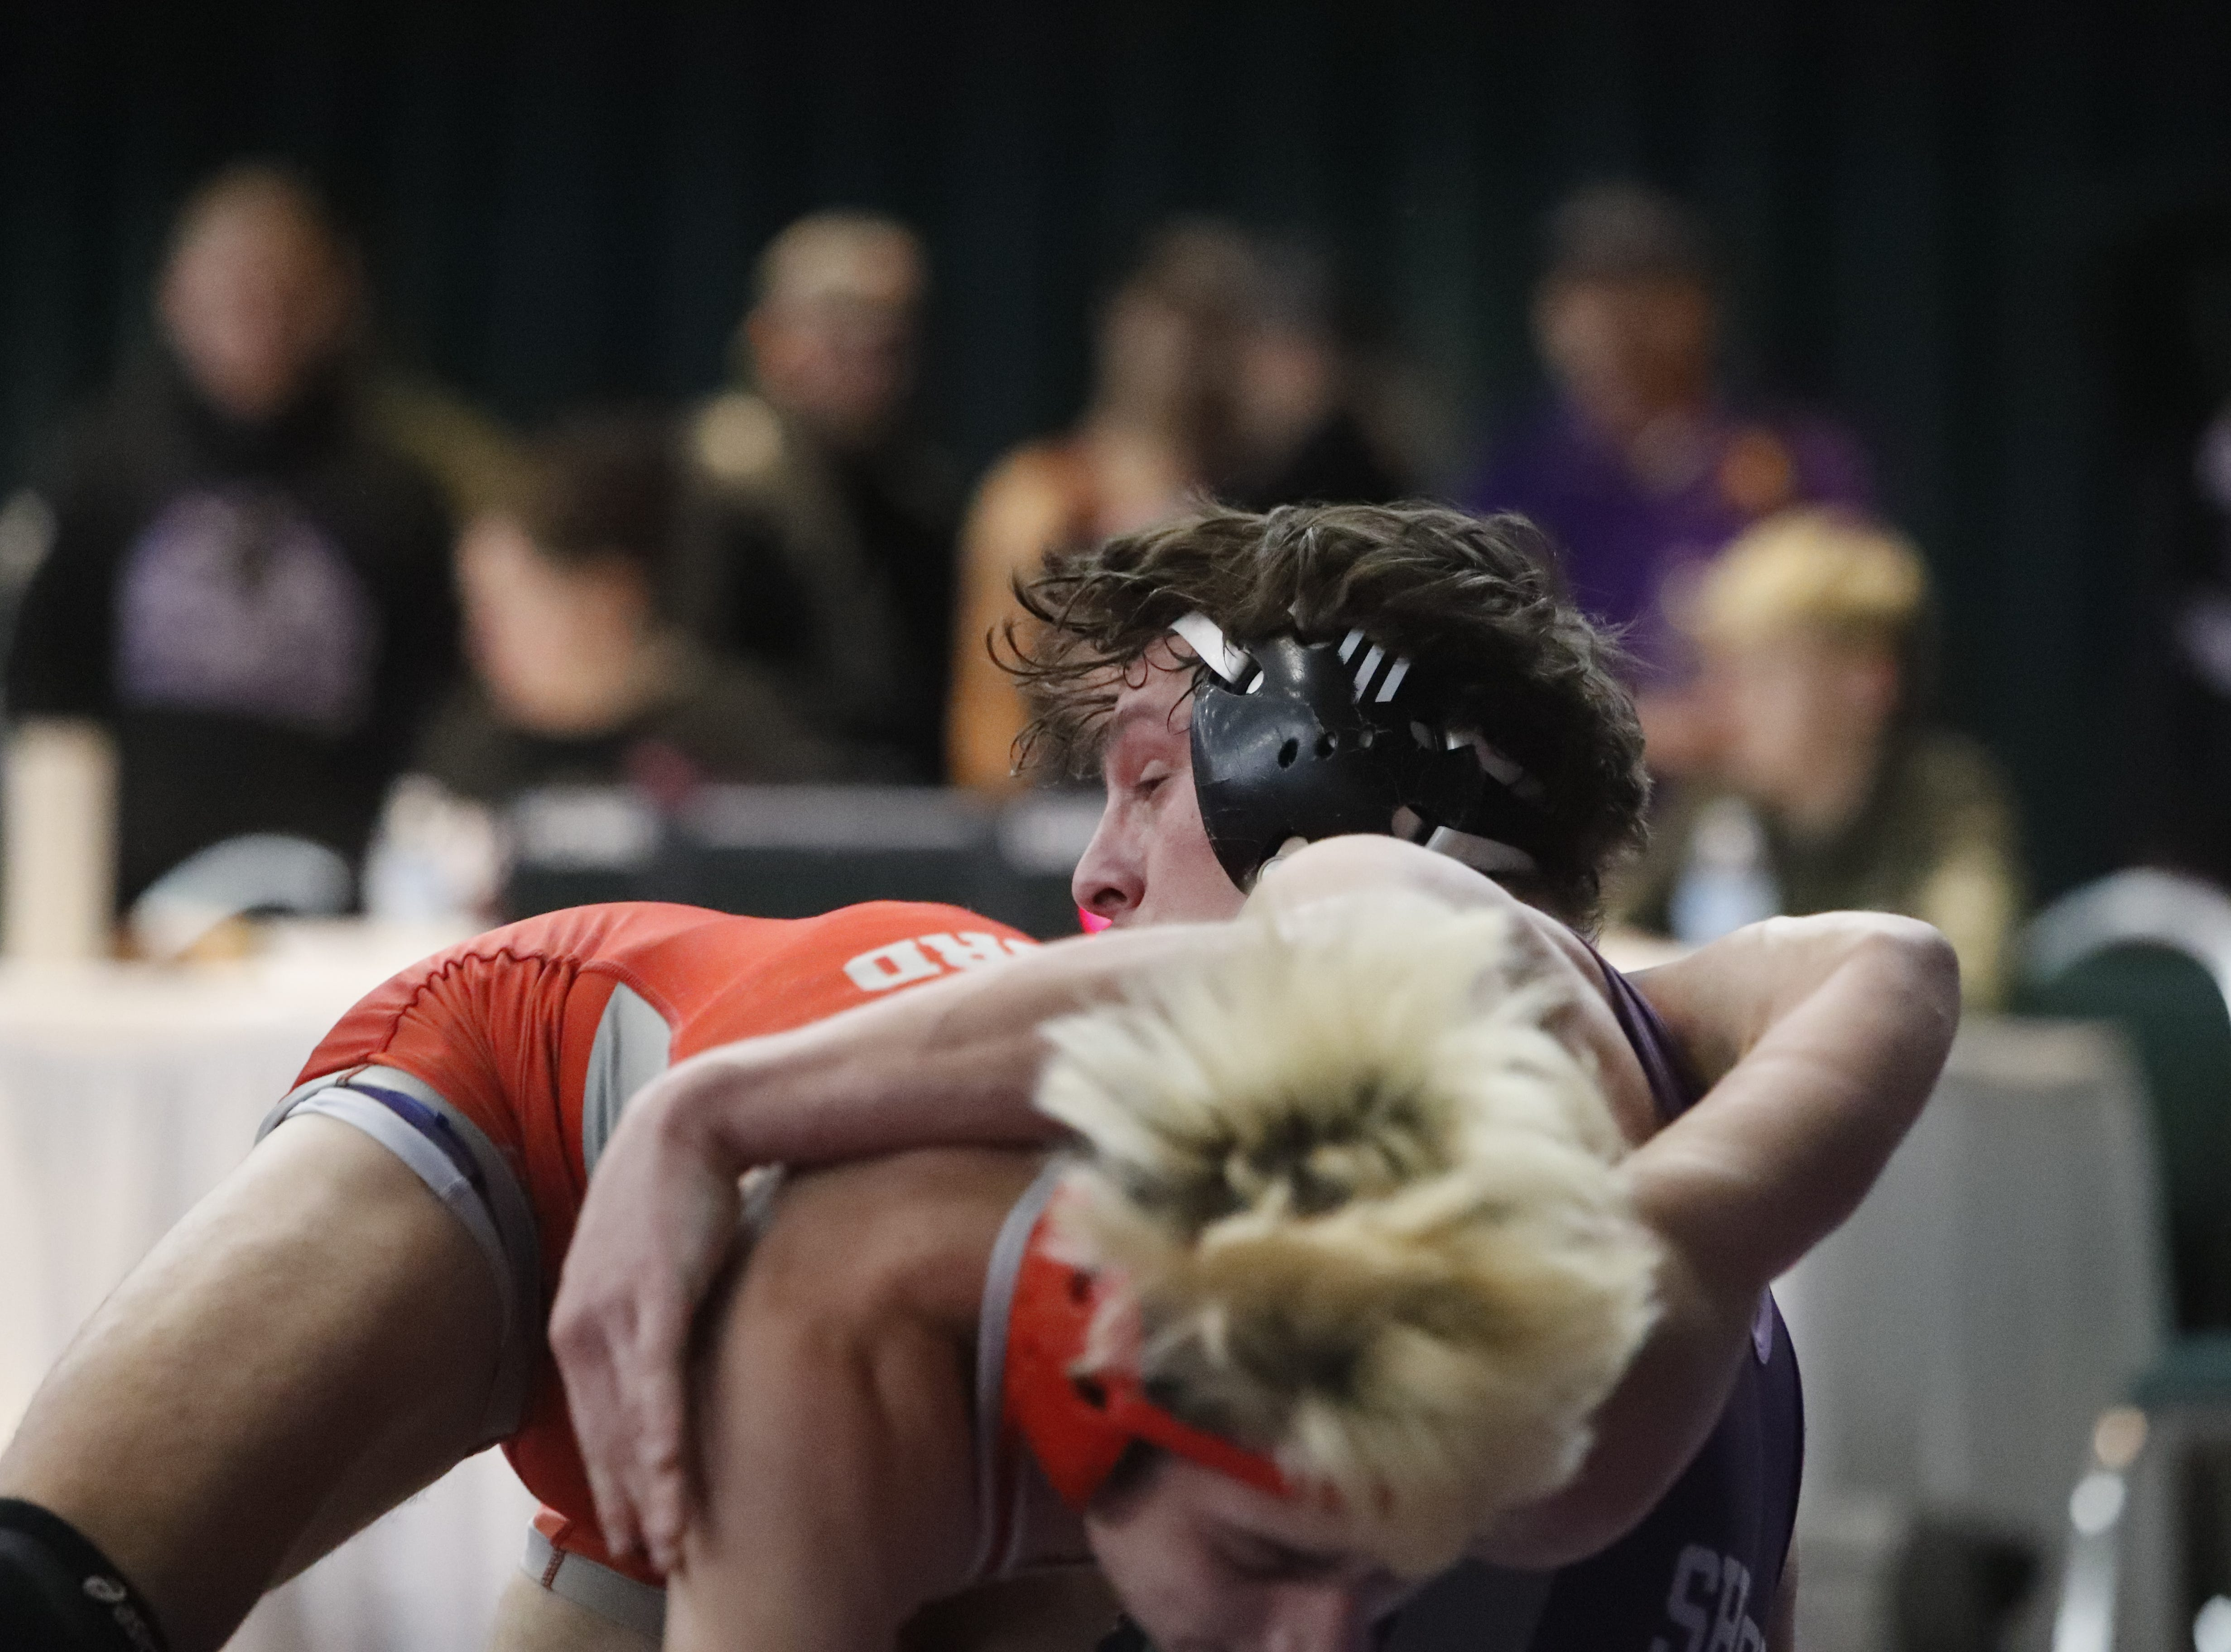 Shasta's Aydin Facey (above) and Foothill's Corey Williford wrestle in the 152-pound semifinals at the Northern Section championships on Friday, Feb. 15, at the Redding Civic Auditorium.